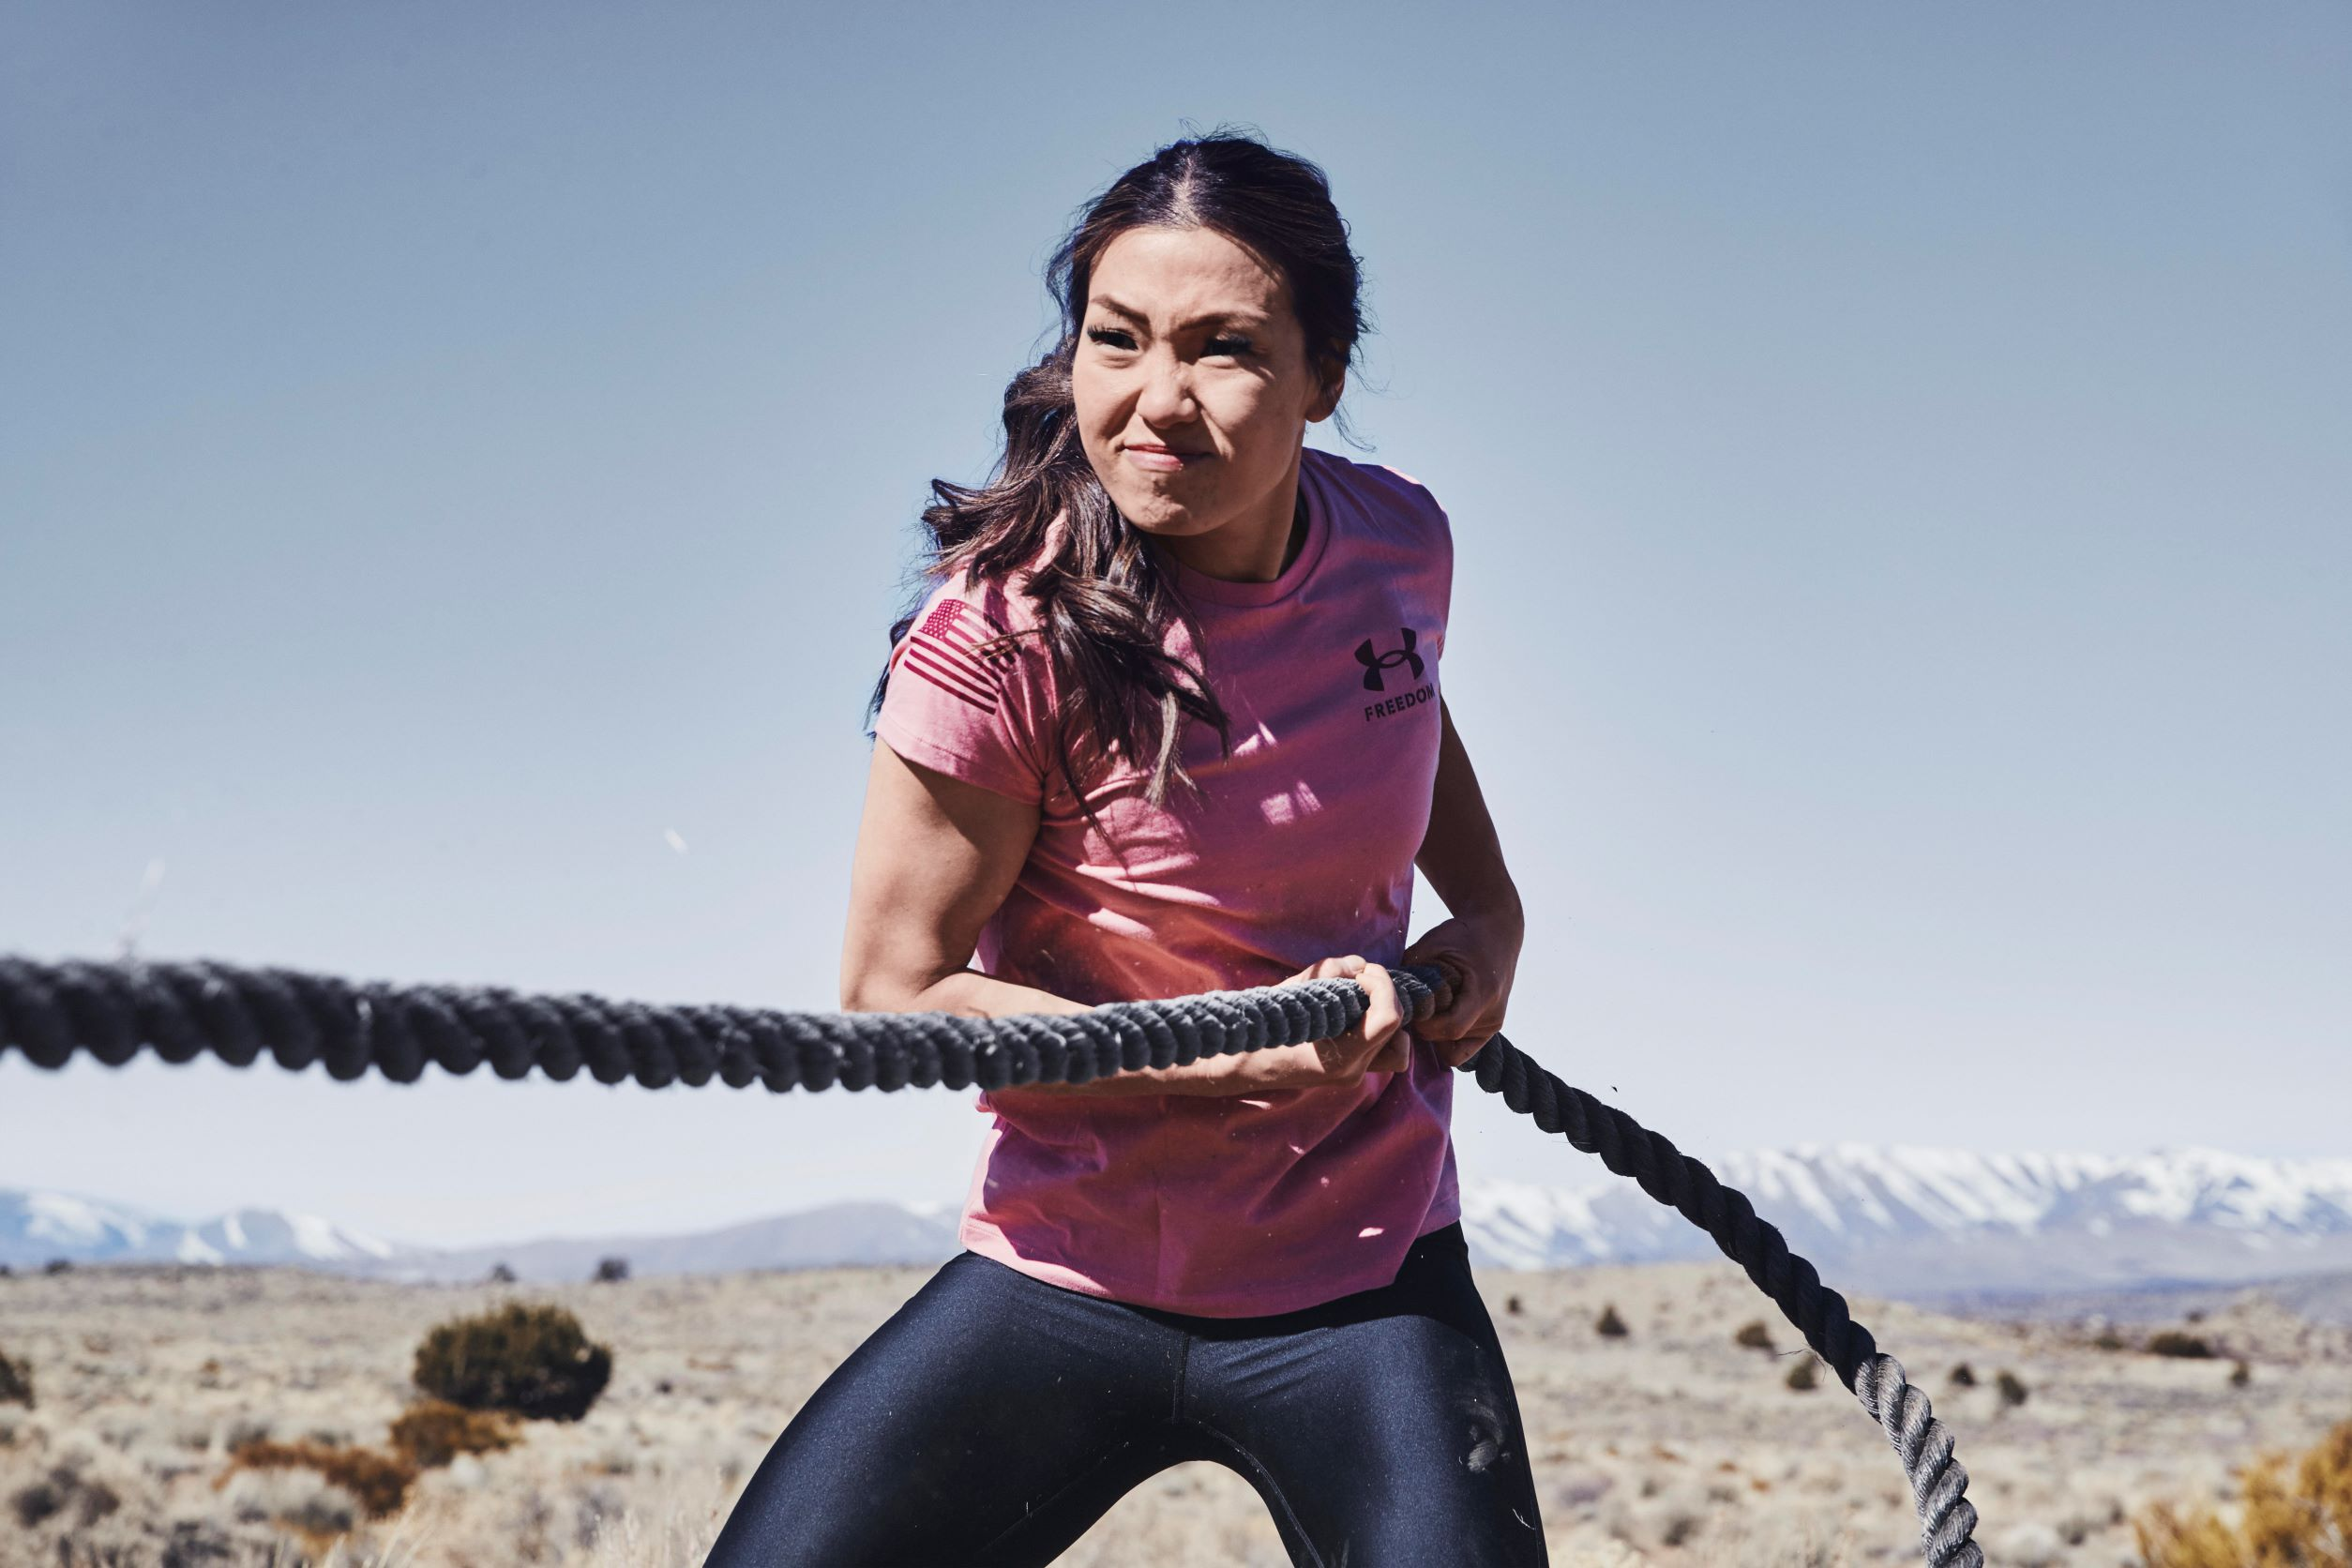 FRONTLINE WORKERS GET 20% OFF* from Under Armour